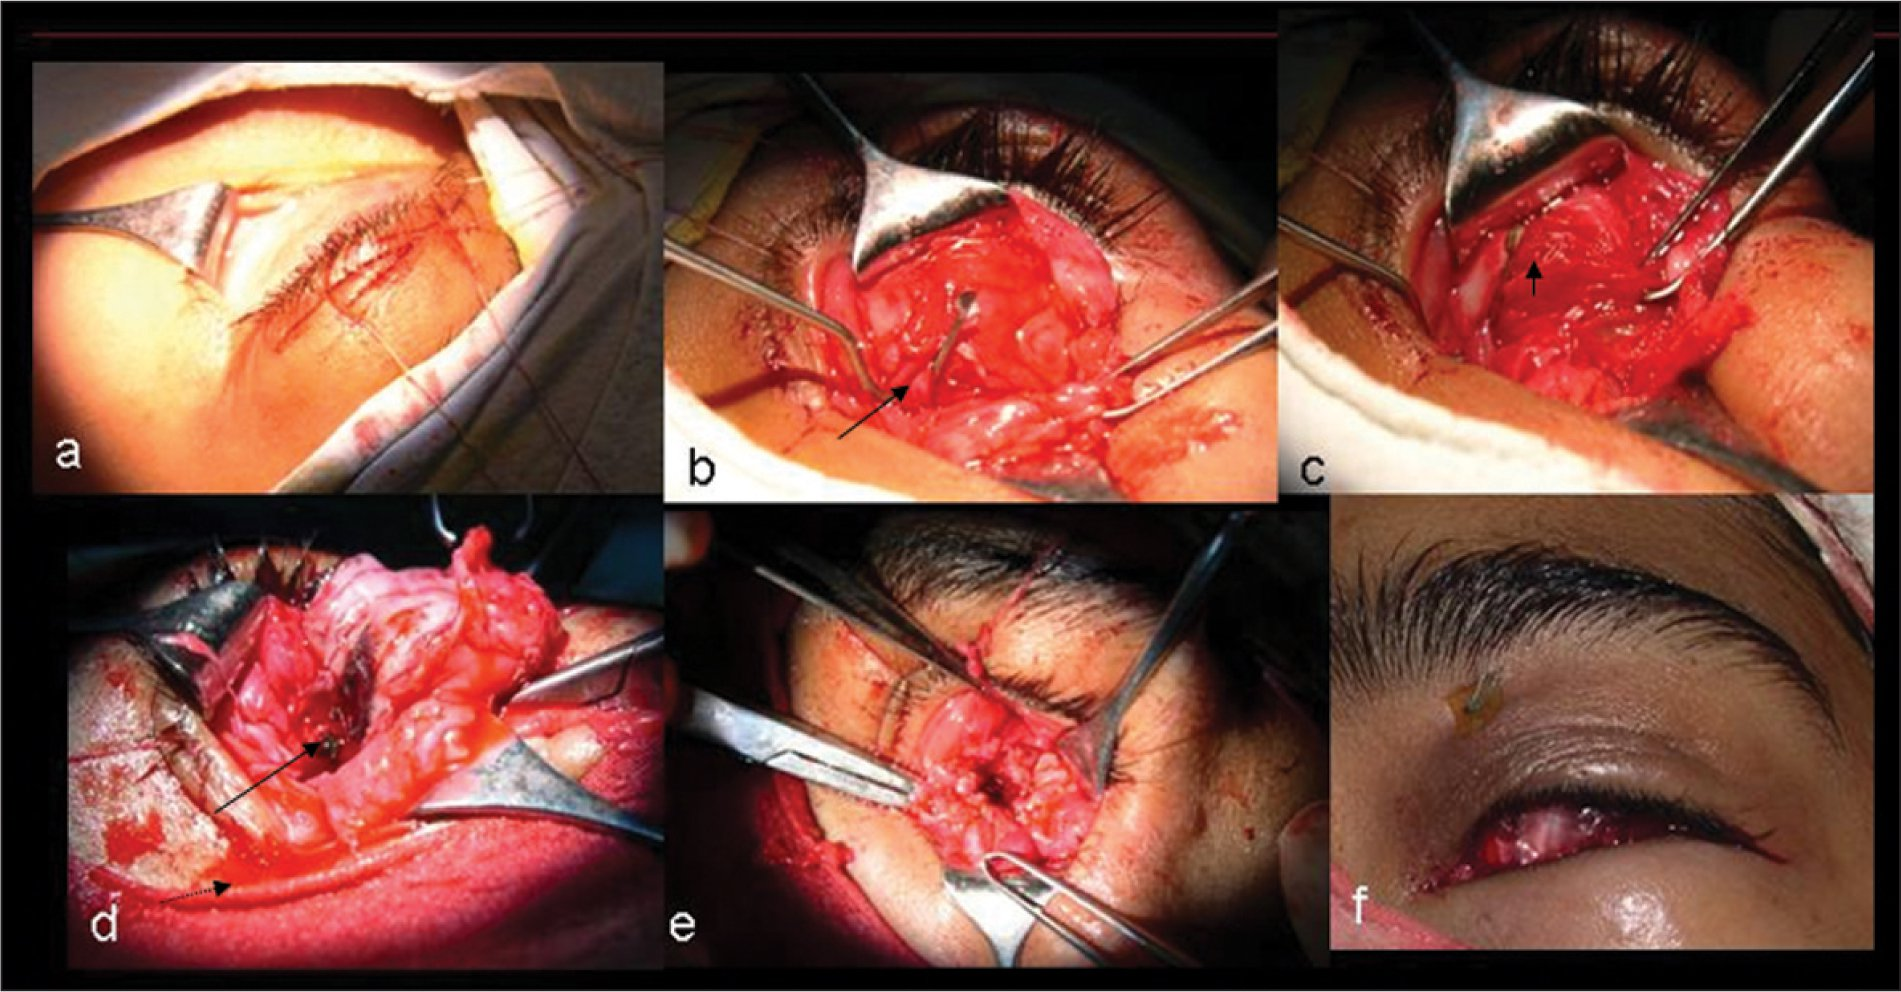 (A) Intraoperative Photographs of Subconjunctival Sclera-Like Structure with Absent Normal Eyeball. (B) Hooked Lateral Rectus Muscle (arrow). (C) Multilayered Anterior Cyst Wall Revealed on Further Dissection (arrow). (D) Opened up One Loculi of the Cystic Structure with Dark Pigmented Structure Representing Rudimentary Uveal Tissue (long Arrow). Note the Xanthochromic Fluid Coming Out of the Cyst (small Arrow). (E) The Remaining Posterior Mass that Was Covered with Conjunctival Tissue. (F) Conformer in Place Along with Superior Fornix Formation Sutures.